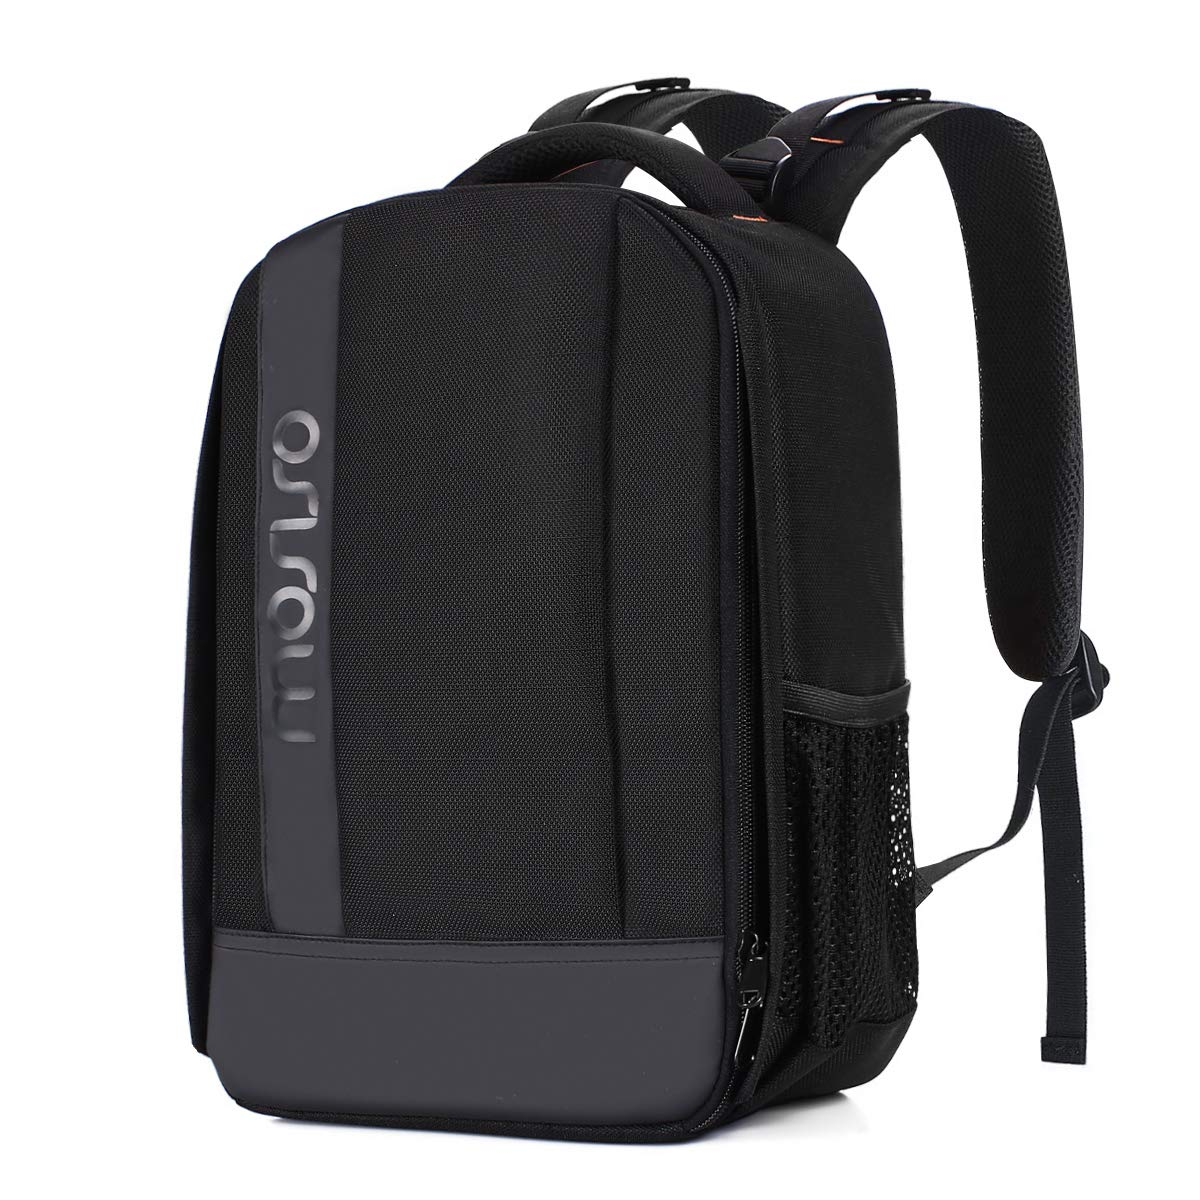 MOSISO Camera Backpack, DSLR/SLR/Mirrorless Camera Case Water Repellent Buffer Padded Shockproof Bag with Customized Modular Inserts and Tripod Holder Compatible with Canon, Nikon, Sony etc, Black by MOSISO